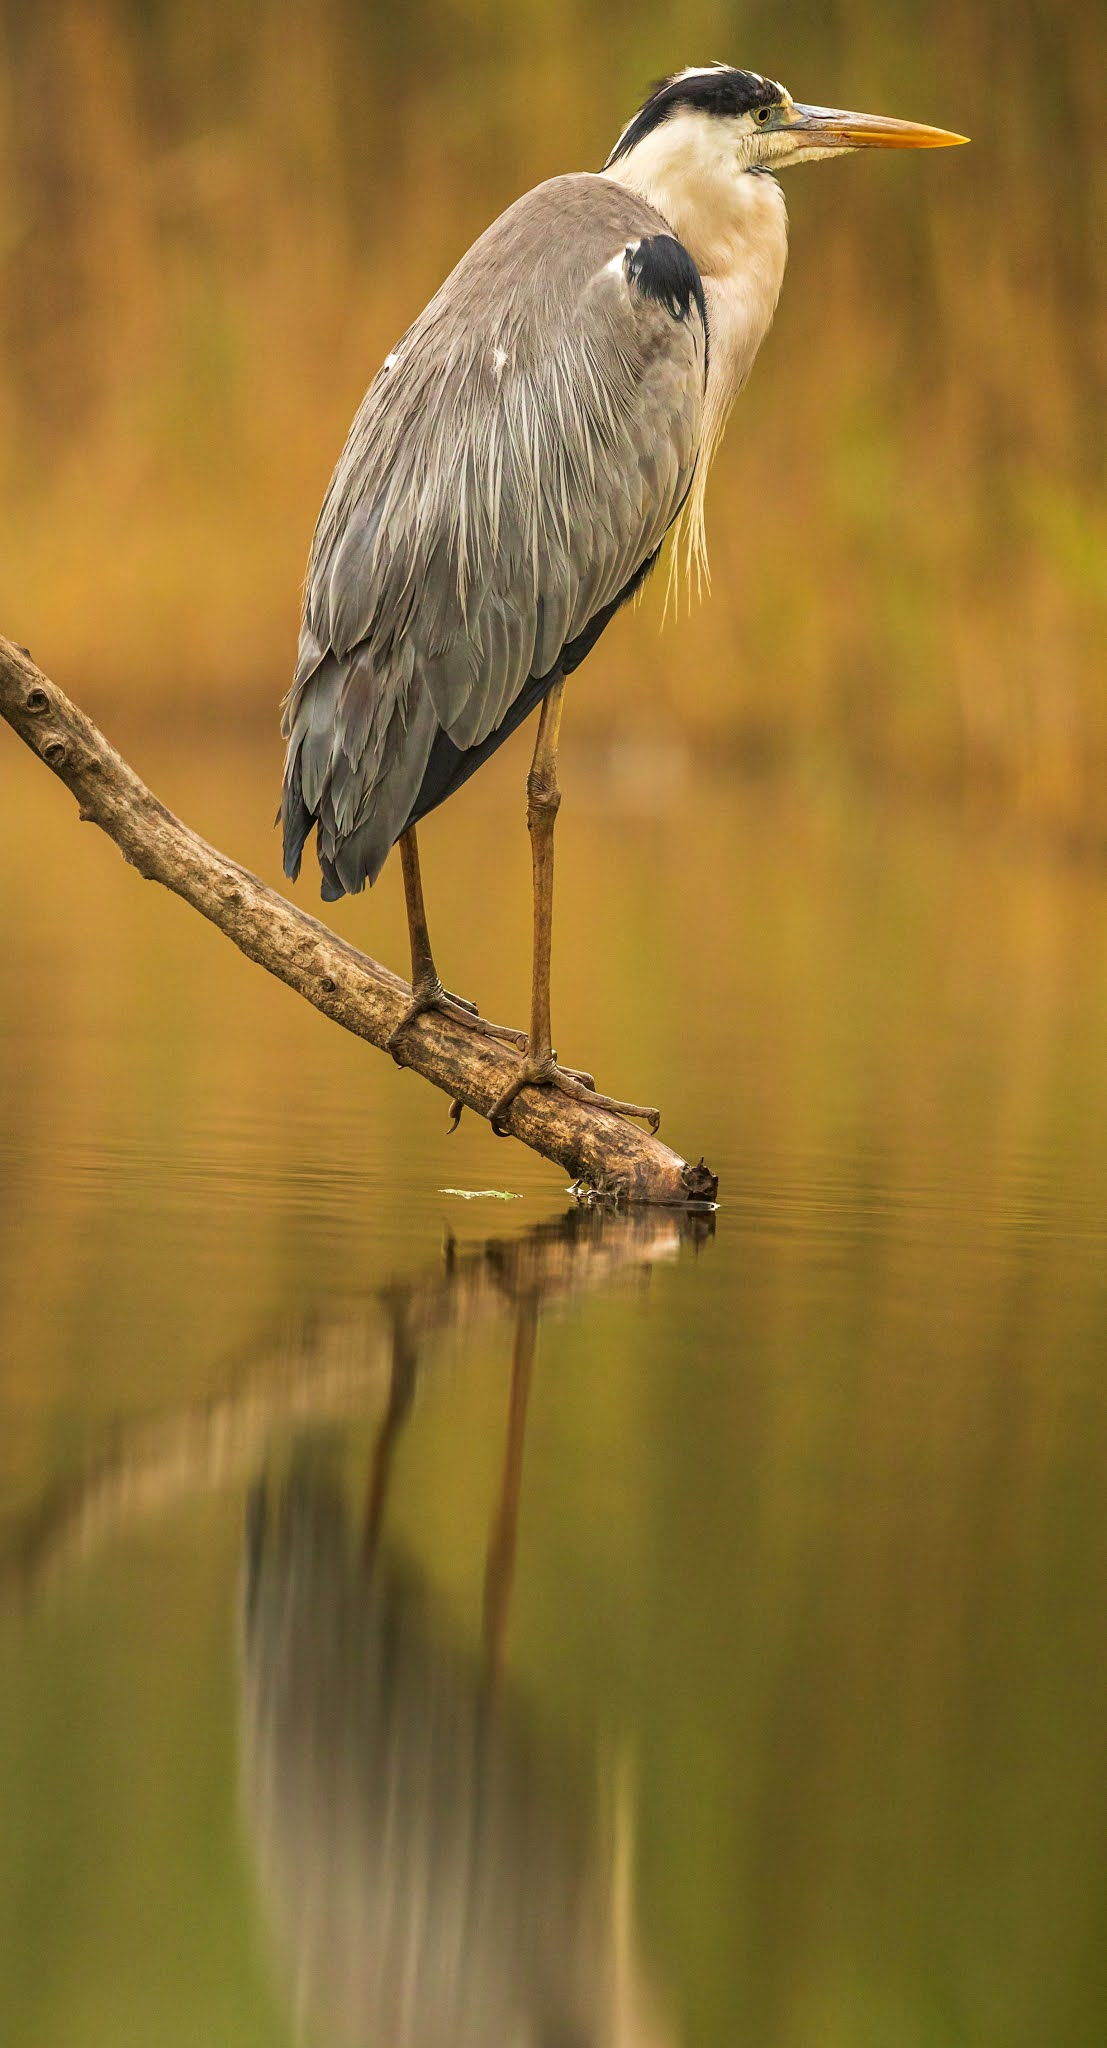 Heron reflection.